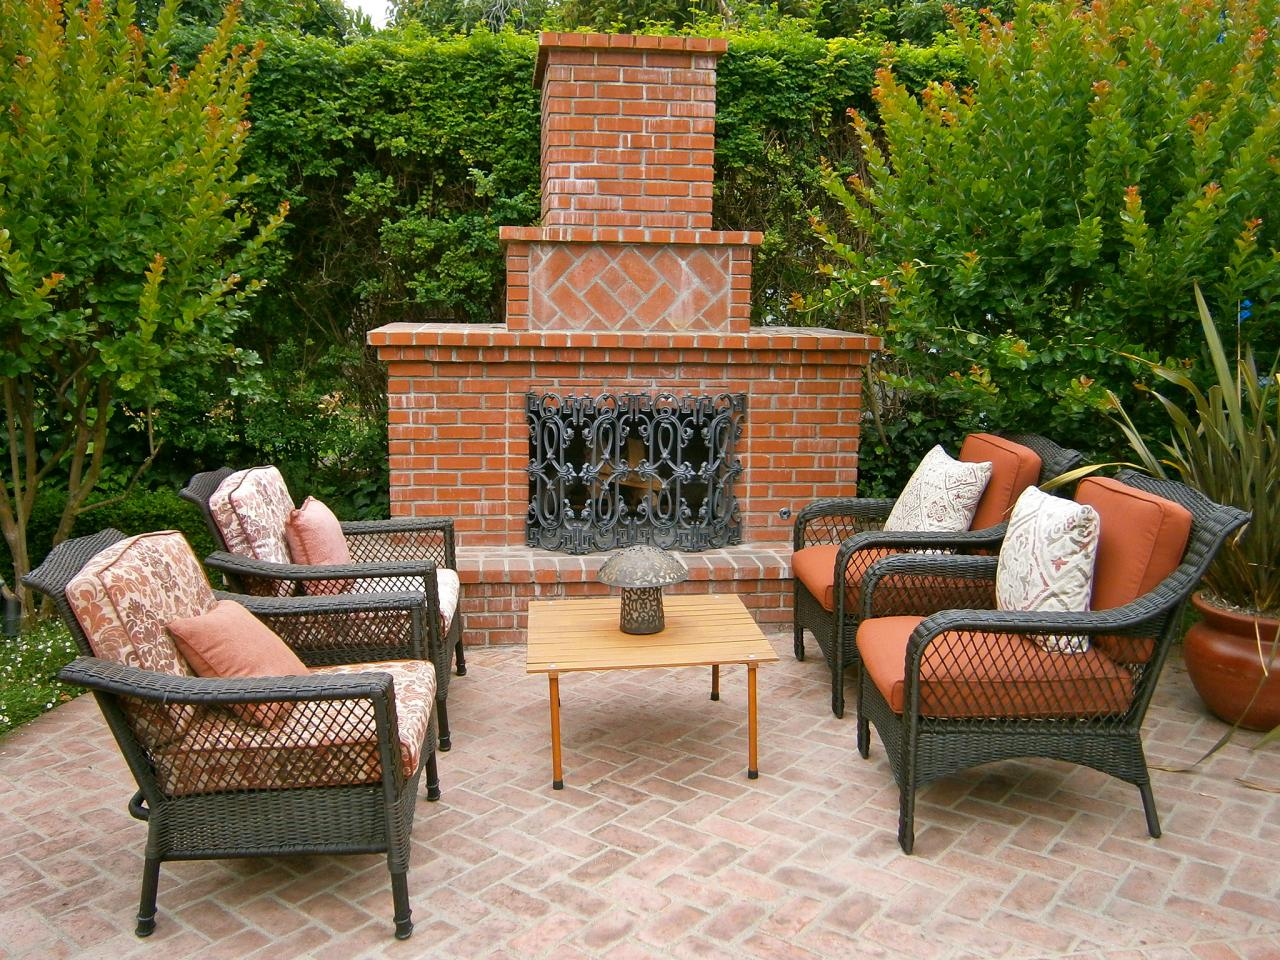 Outdoor Brick Fireplaces | Outdoor Design - Landscaping ... on Brick Outdoor Fireplace Ideas id=82671